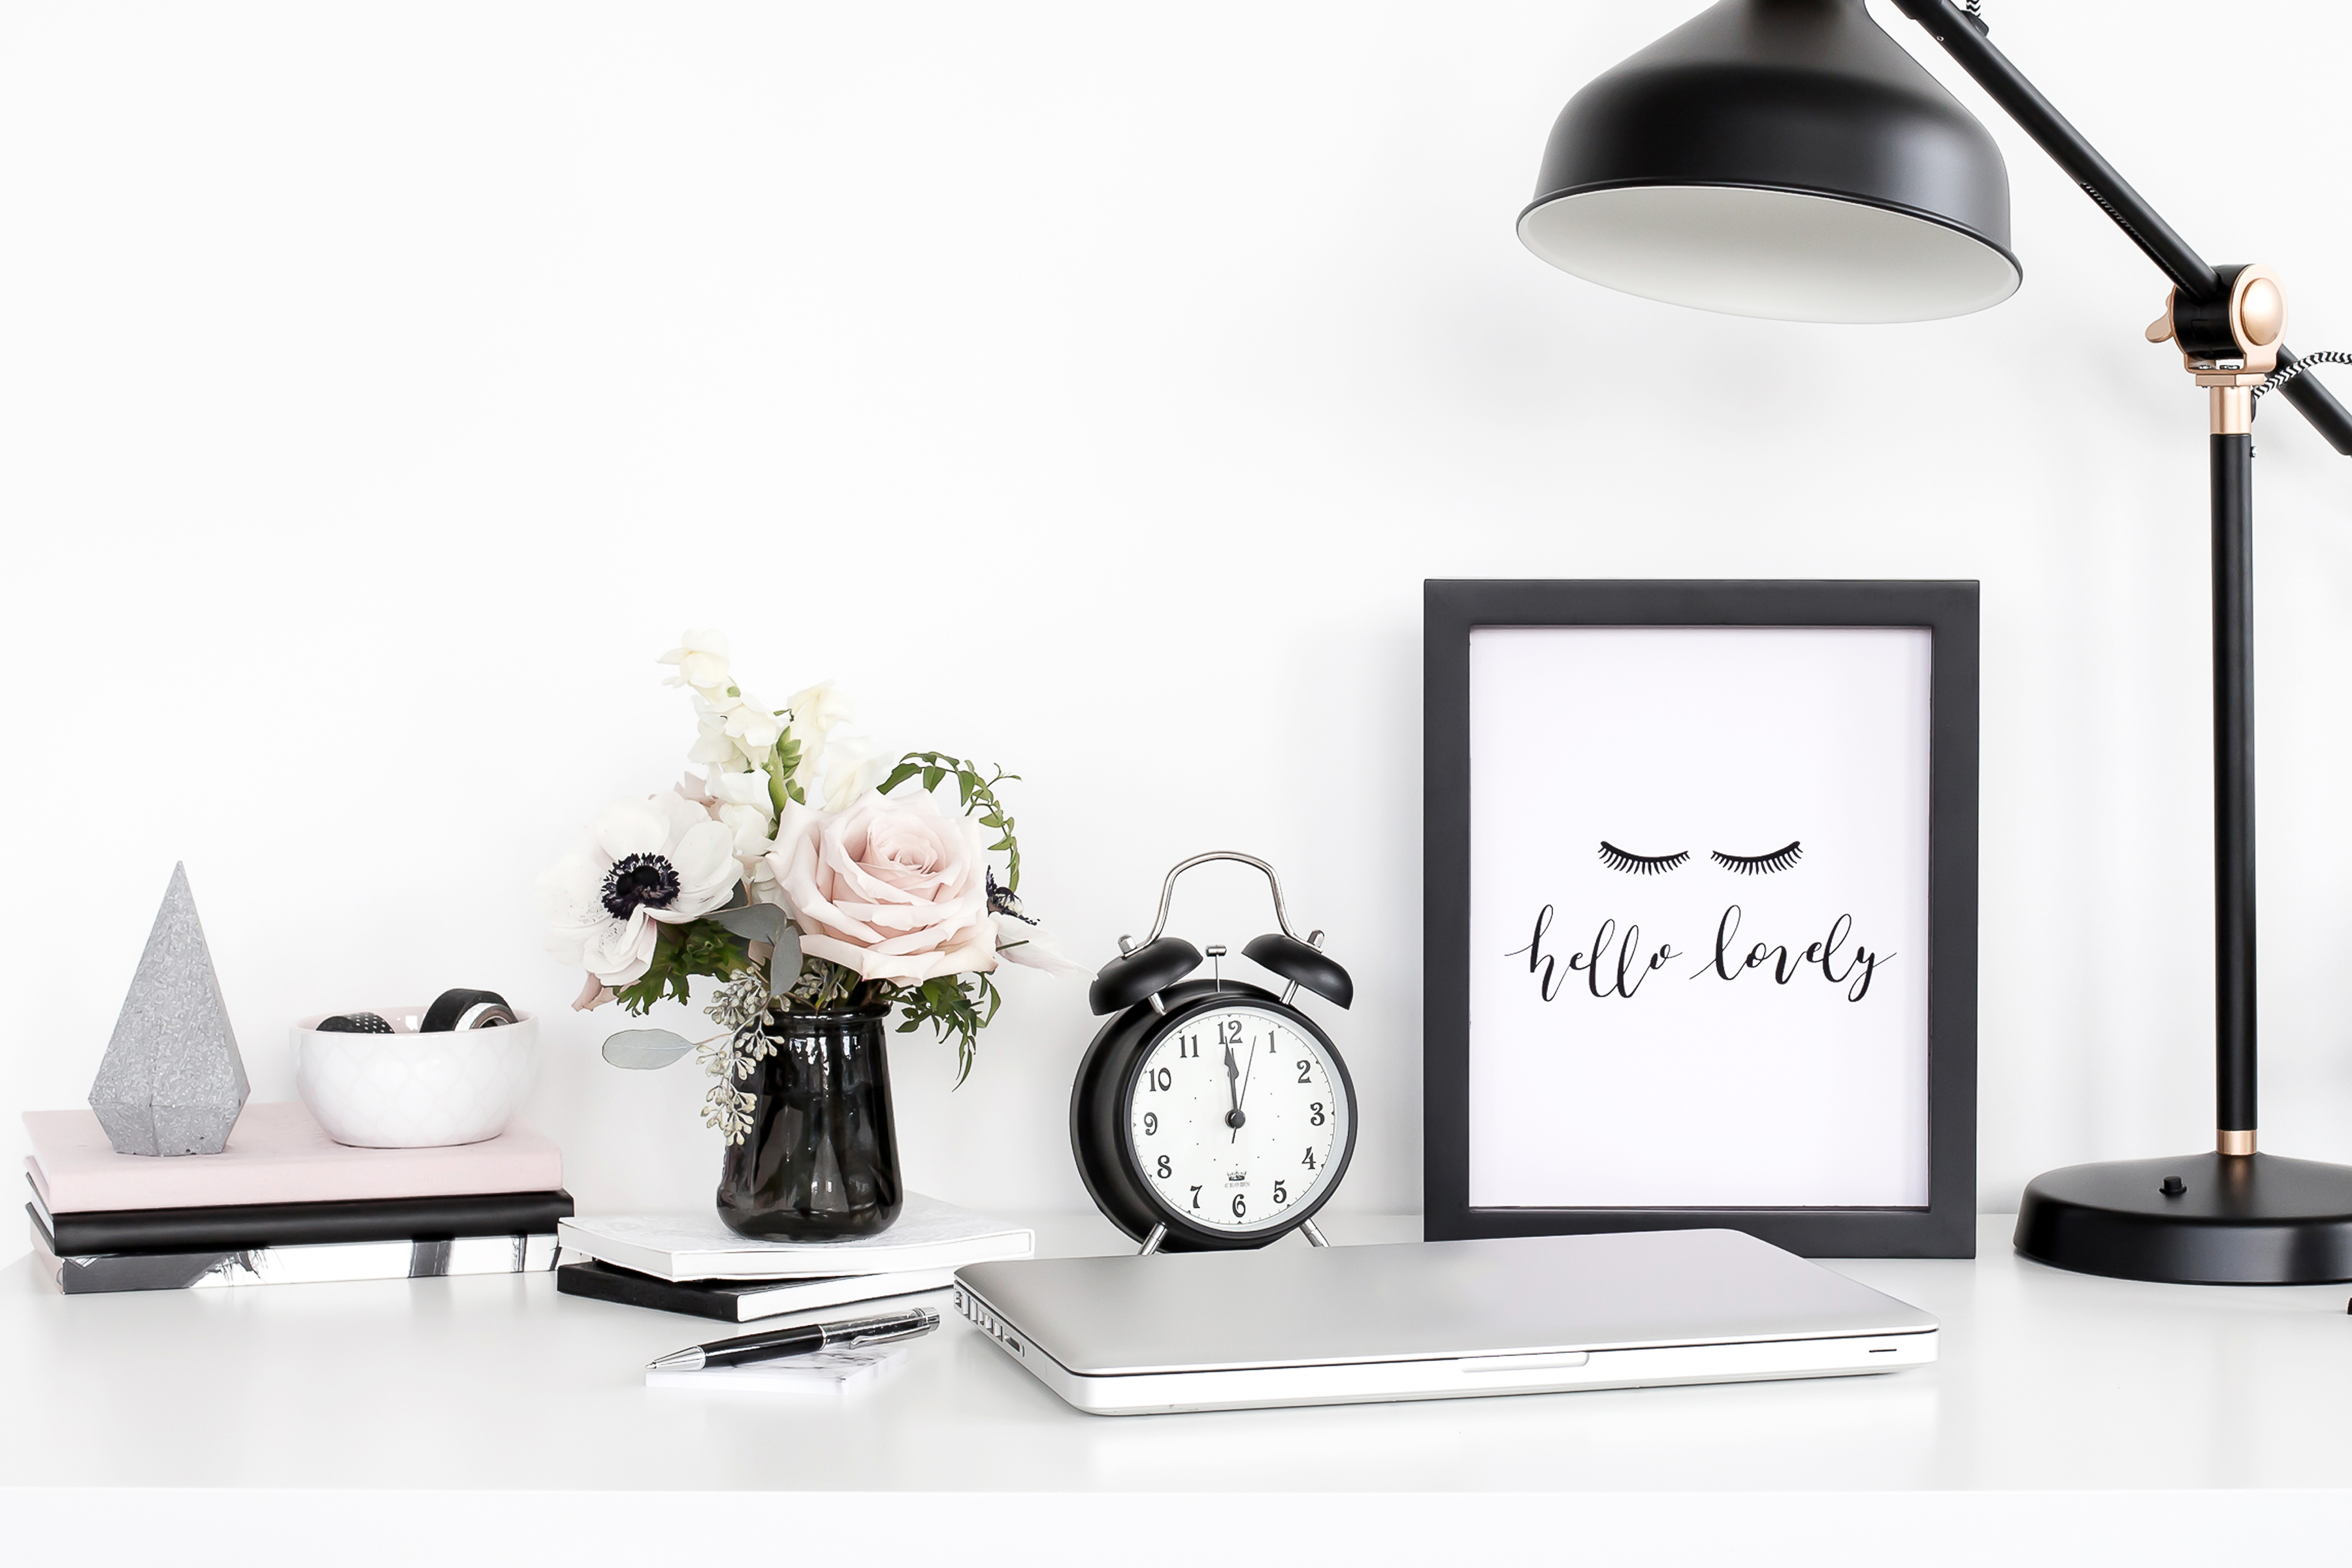 7 Day Time Management Course